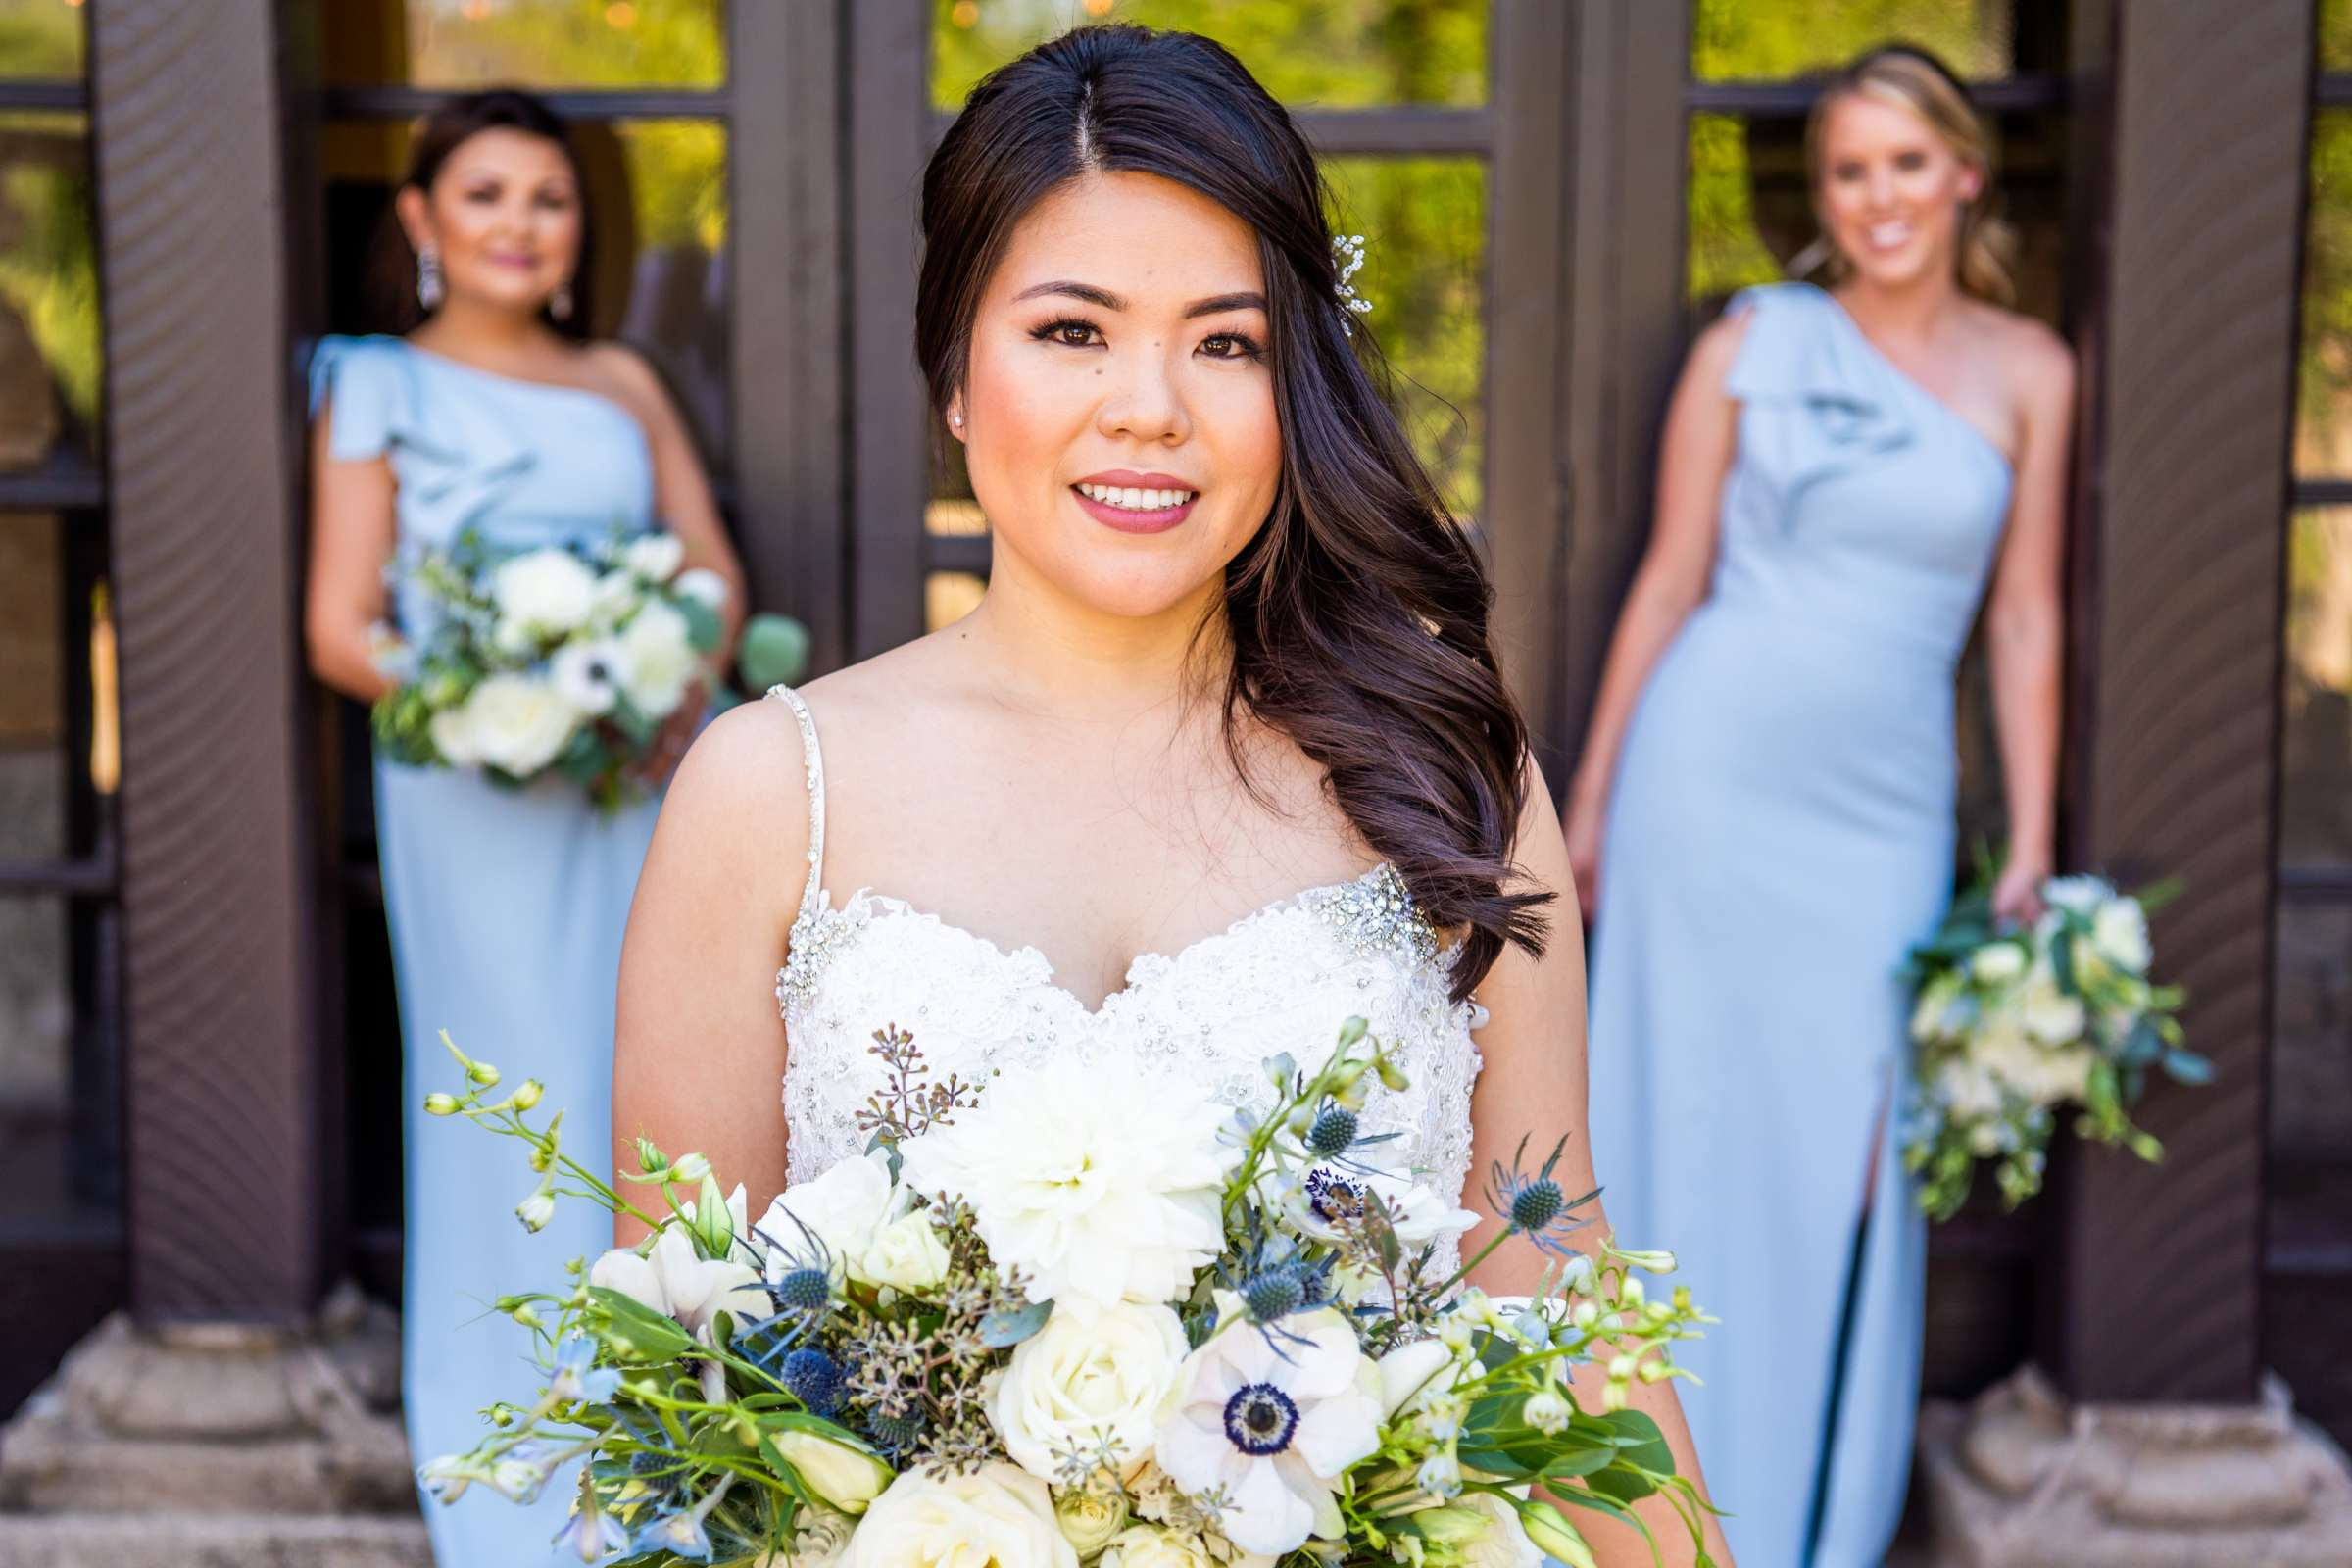 Mt Woodson Castle Wedding coordinated by I Do Weddings, Aya and Jared Wedding Photo #486908 by True Photography